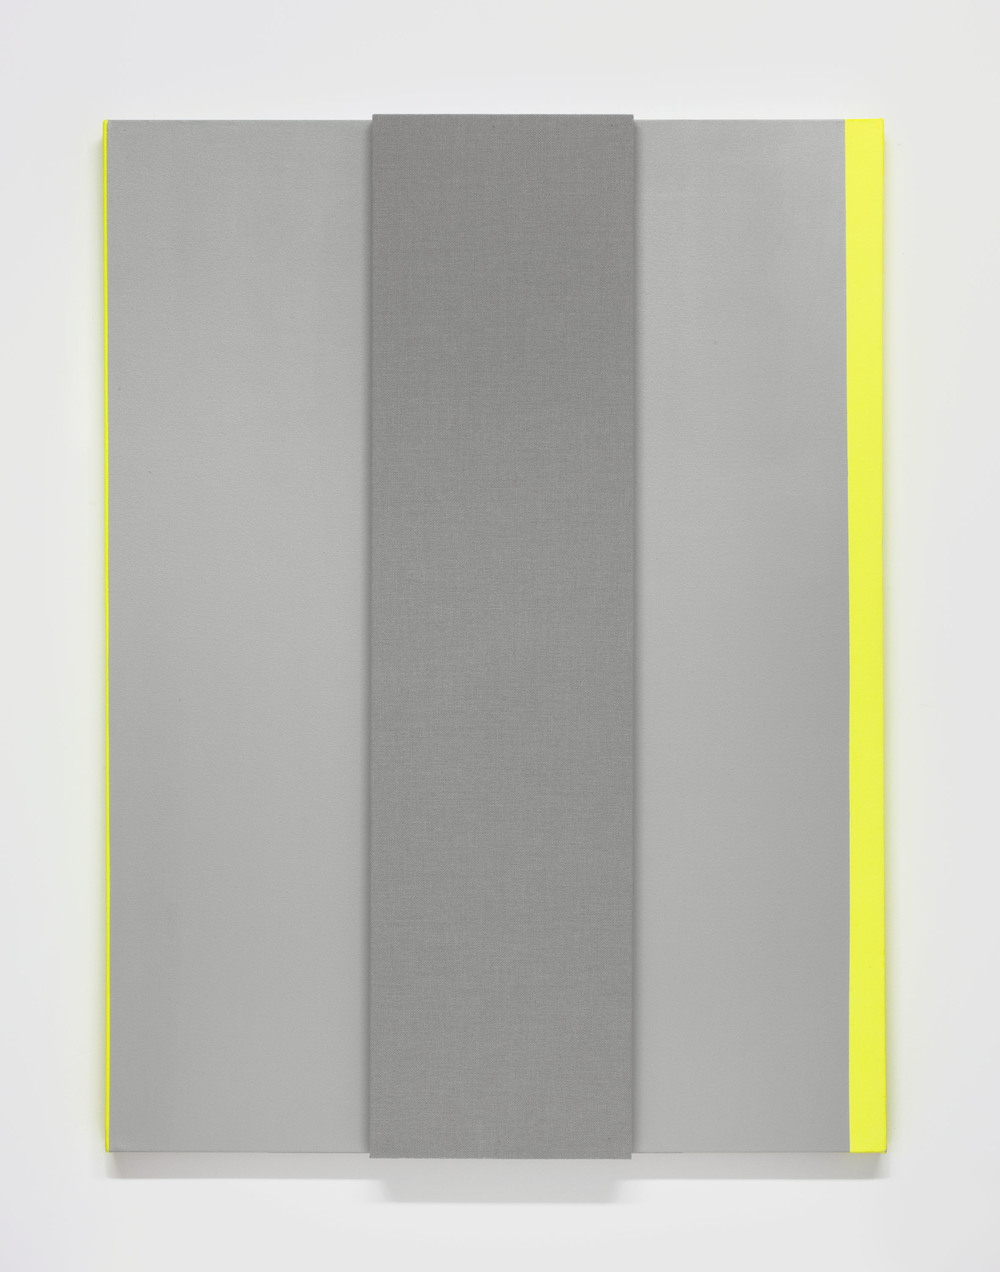 Light Gray with Bright Note #1 -- Acoustic absorber panel and acrylic paint on canvas, 36 x 48 inches each, 2013.